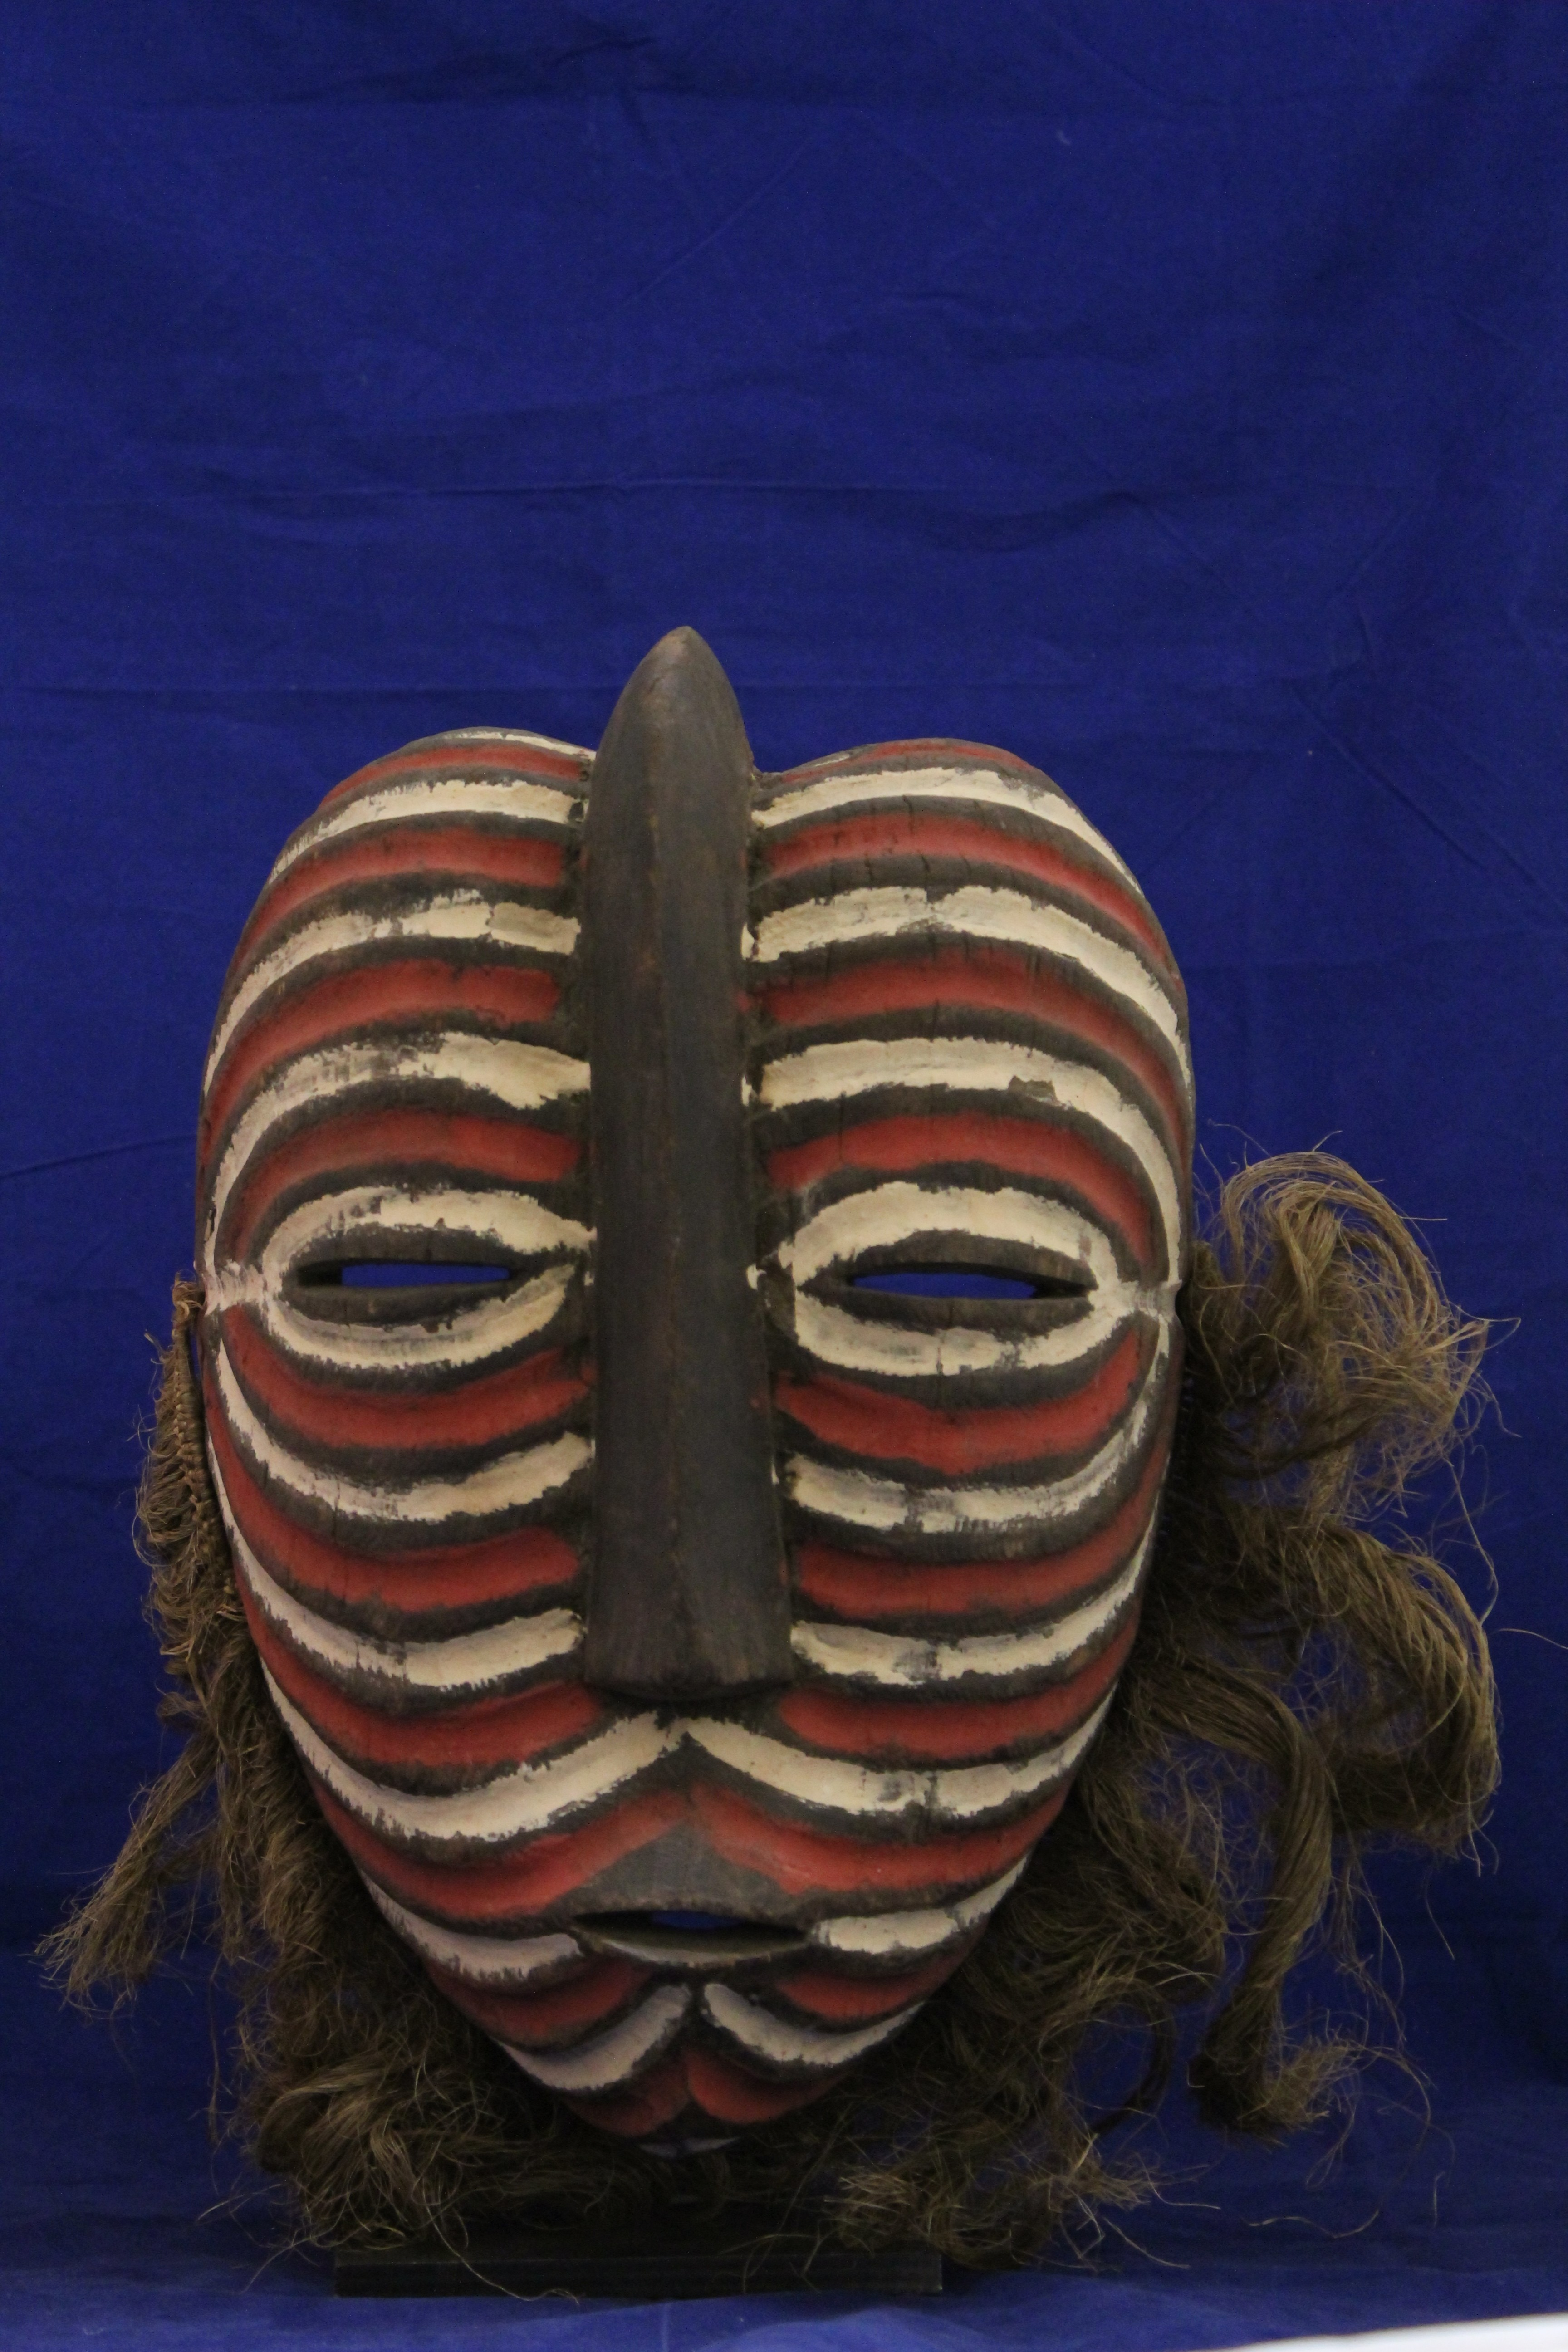 African Masks Researched By Kristen Stephens And Courtney Cunningham